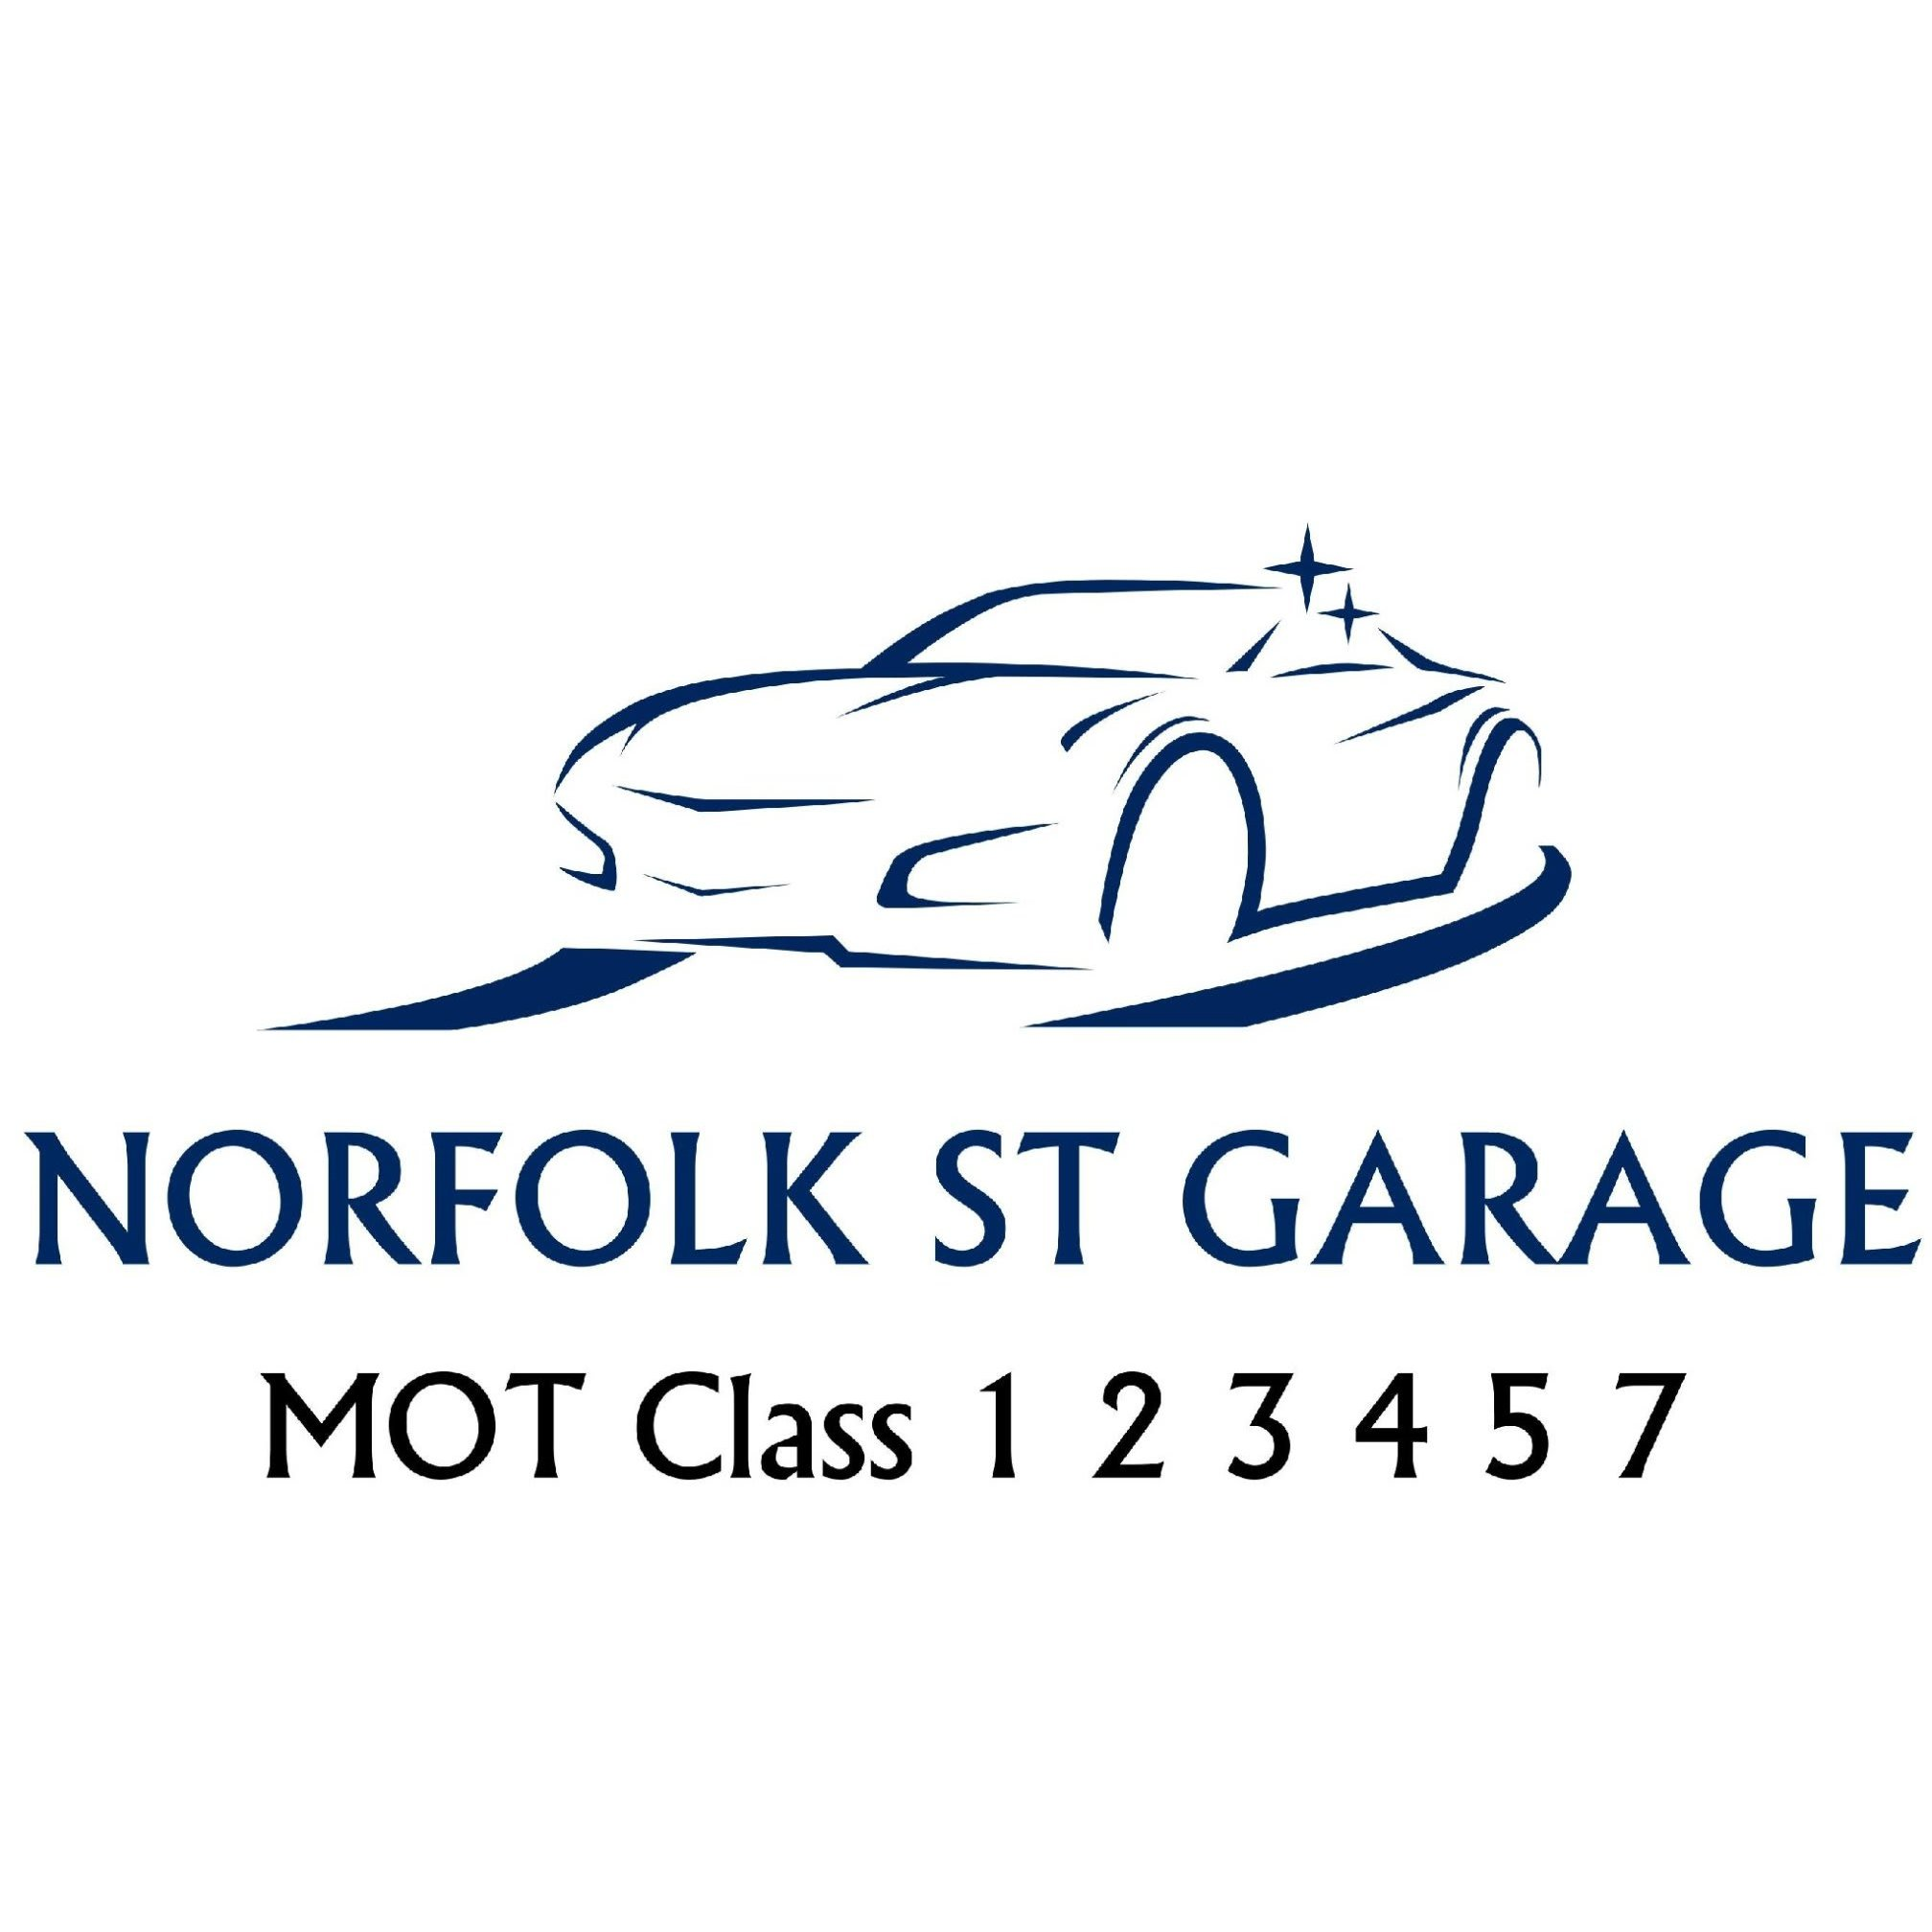 Northfolk St Garage - Nelson, Lancashire BB9 7FG - 07759 847677 | ShowMeLocal.com